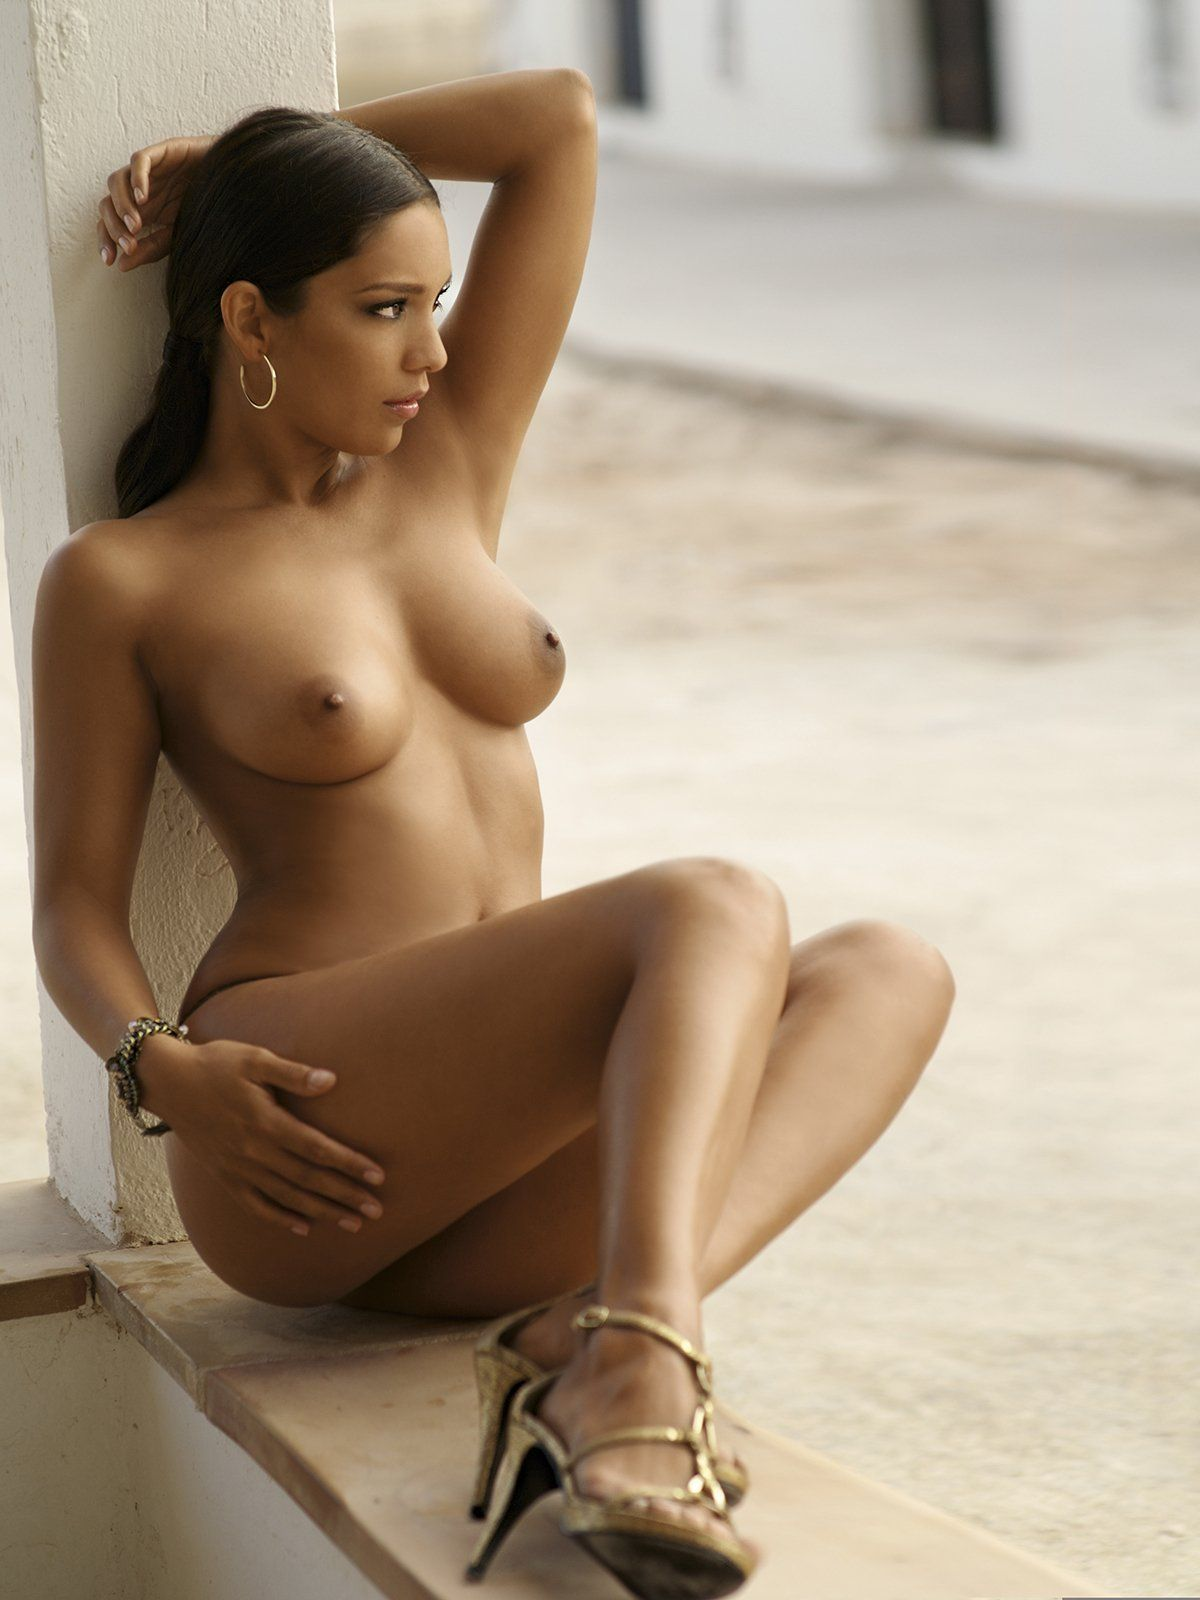 Leonor Perez 10 Your Daily Girl